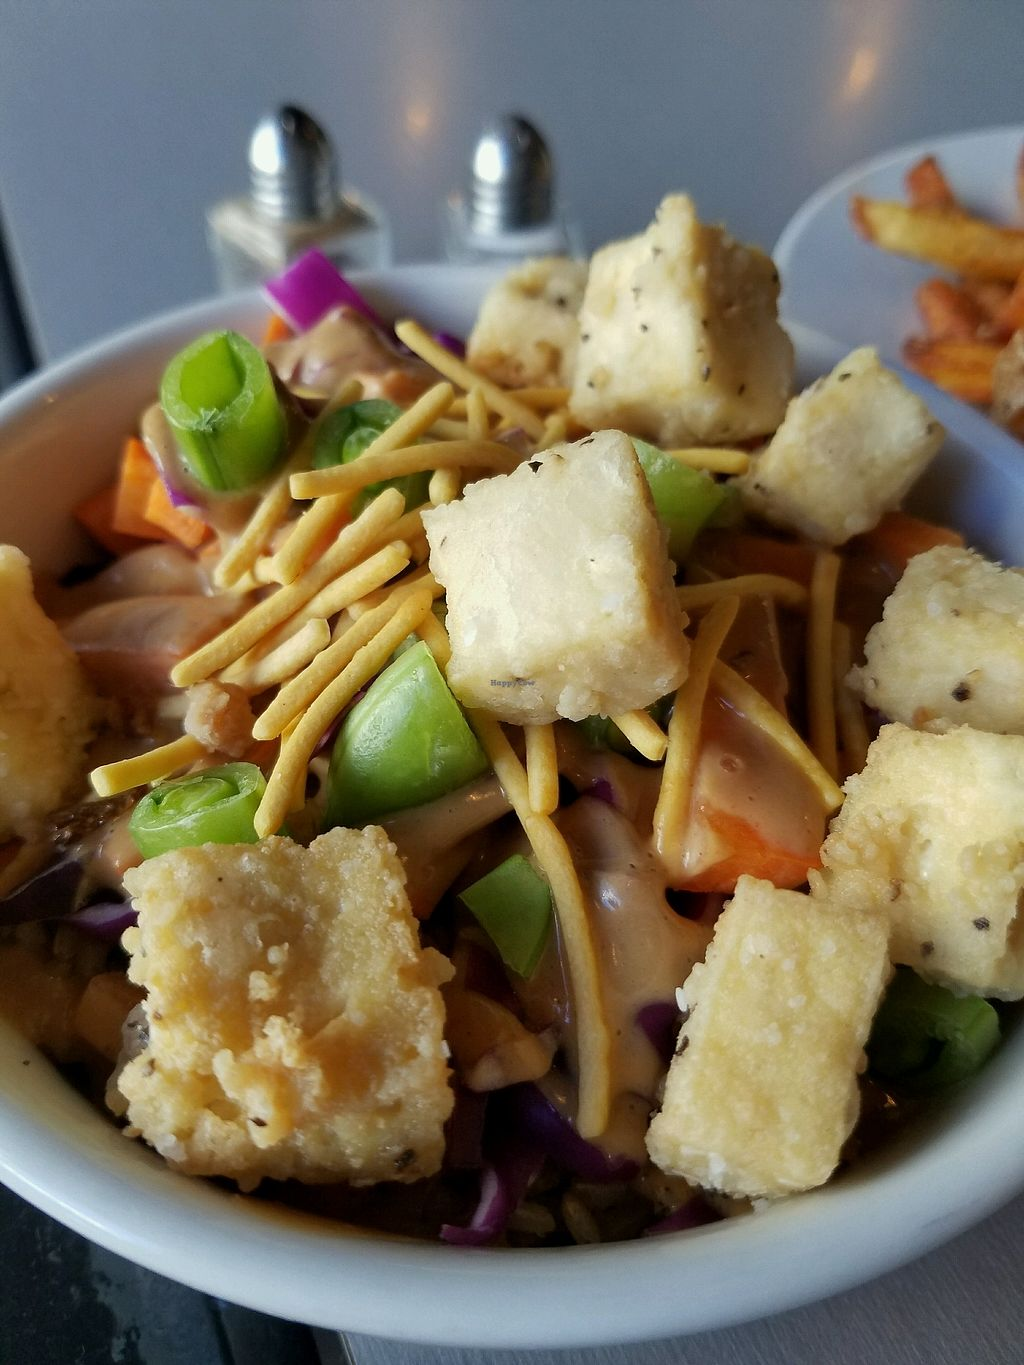 """Photo of Green House Cafe  by <a href=""""/members/profile/andreathinks"""">andreathinks</a> <br/>Thai Bowl <br/> September 8, 2017  - <a href='/contact/abuse/image/81334/302202'>Report</a>"""